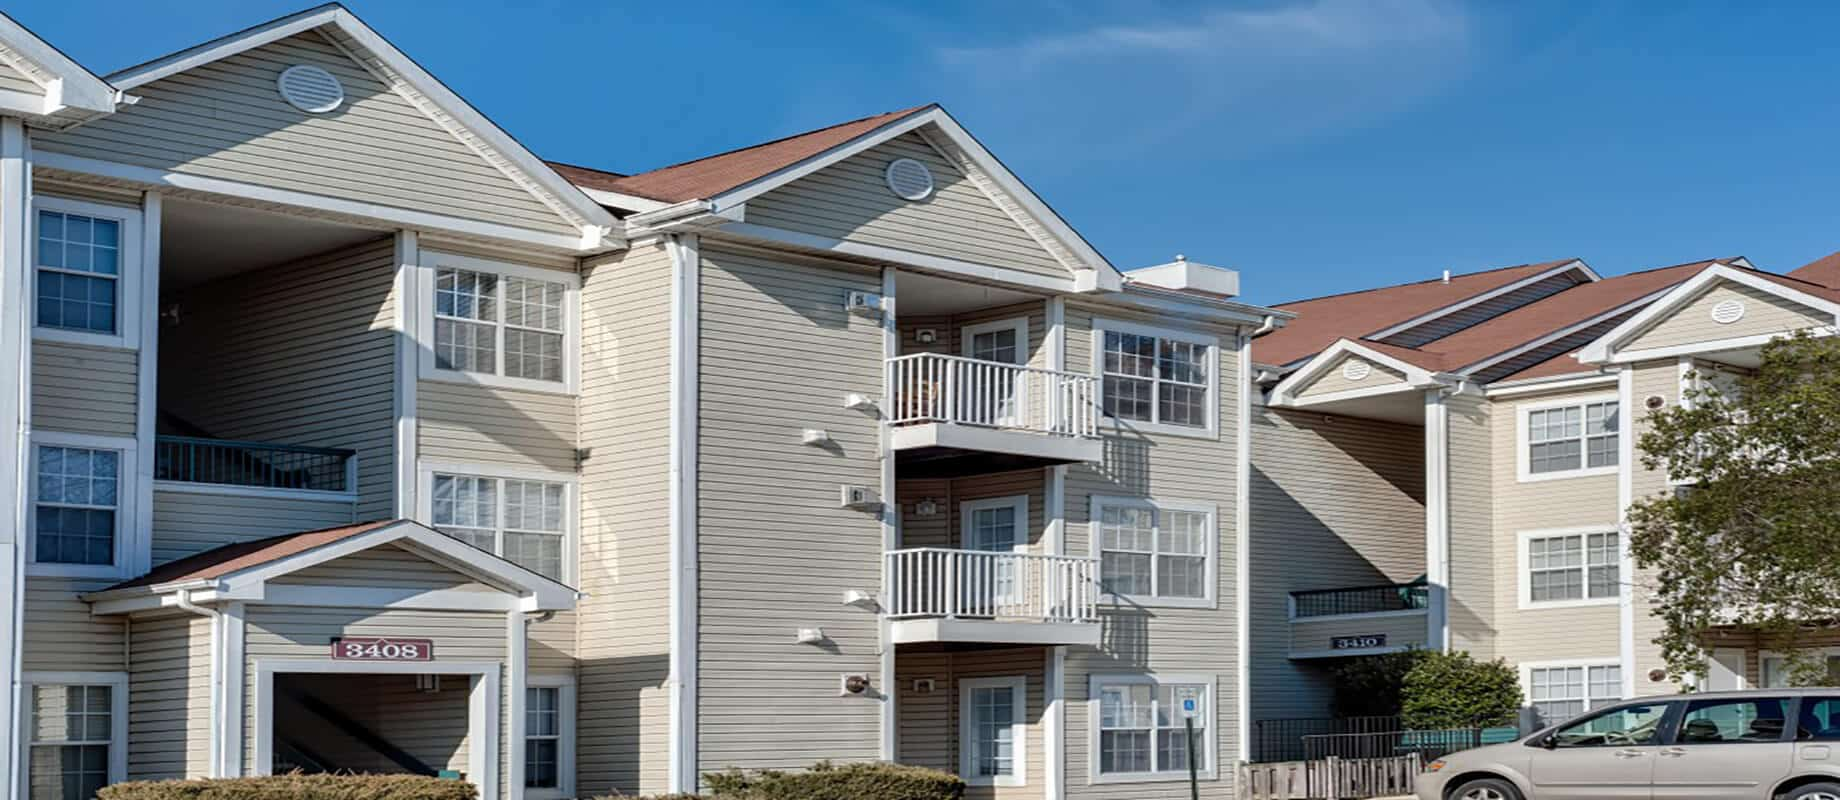 Drings Reach Apartments in Silver Spring MD